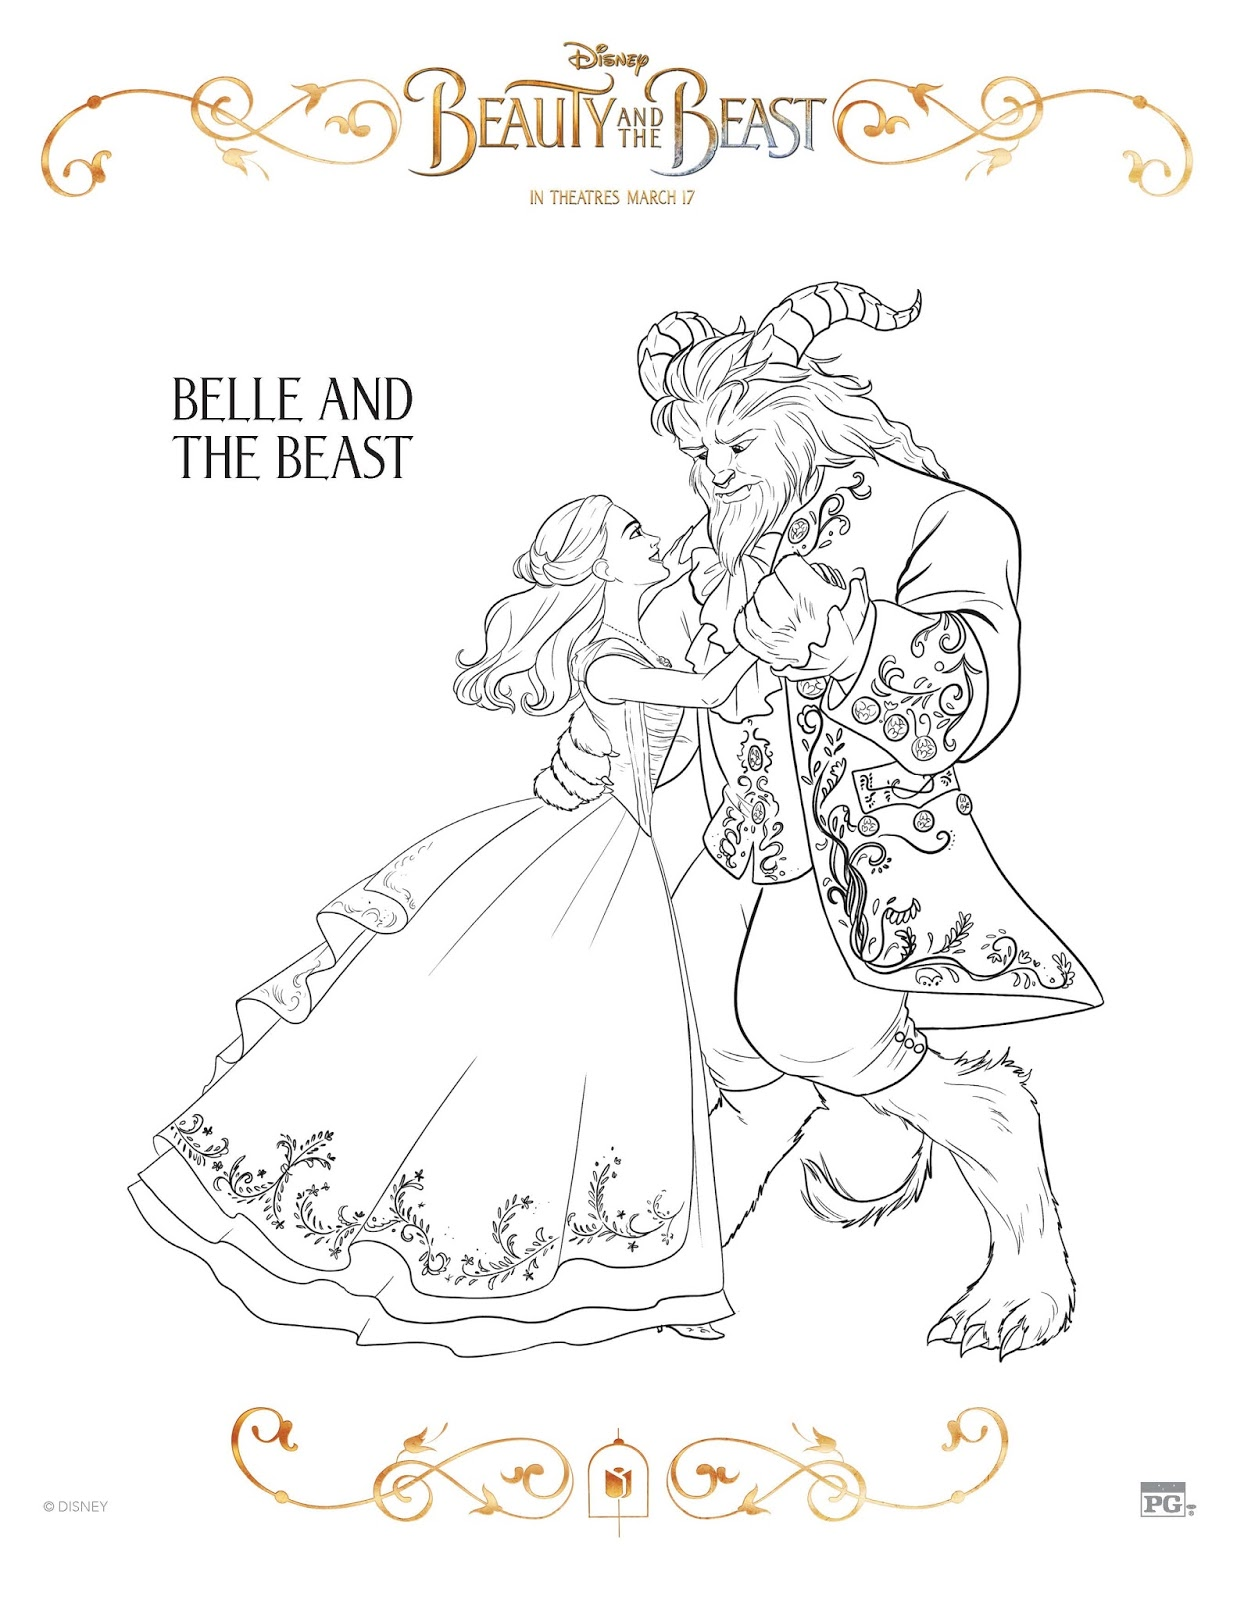 10 free beauty and the beast coloring sheets - Beauty And The Beast Coloring Book